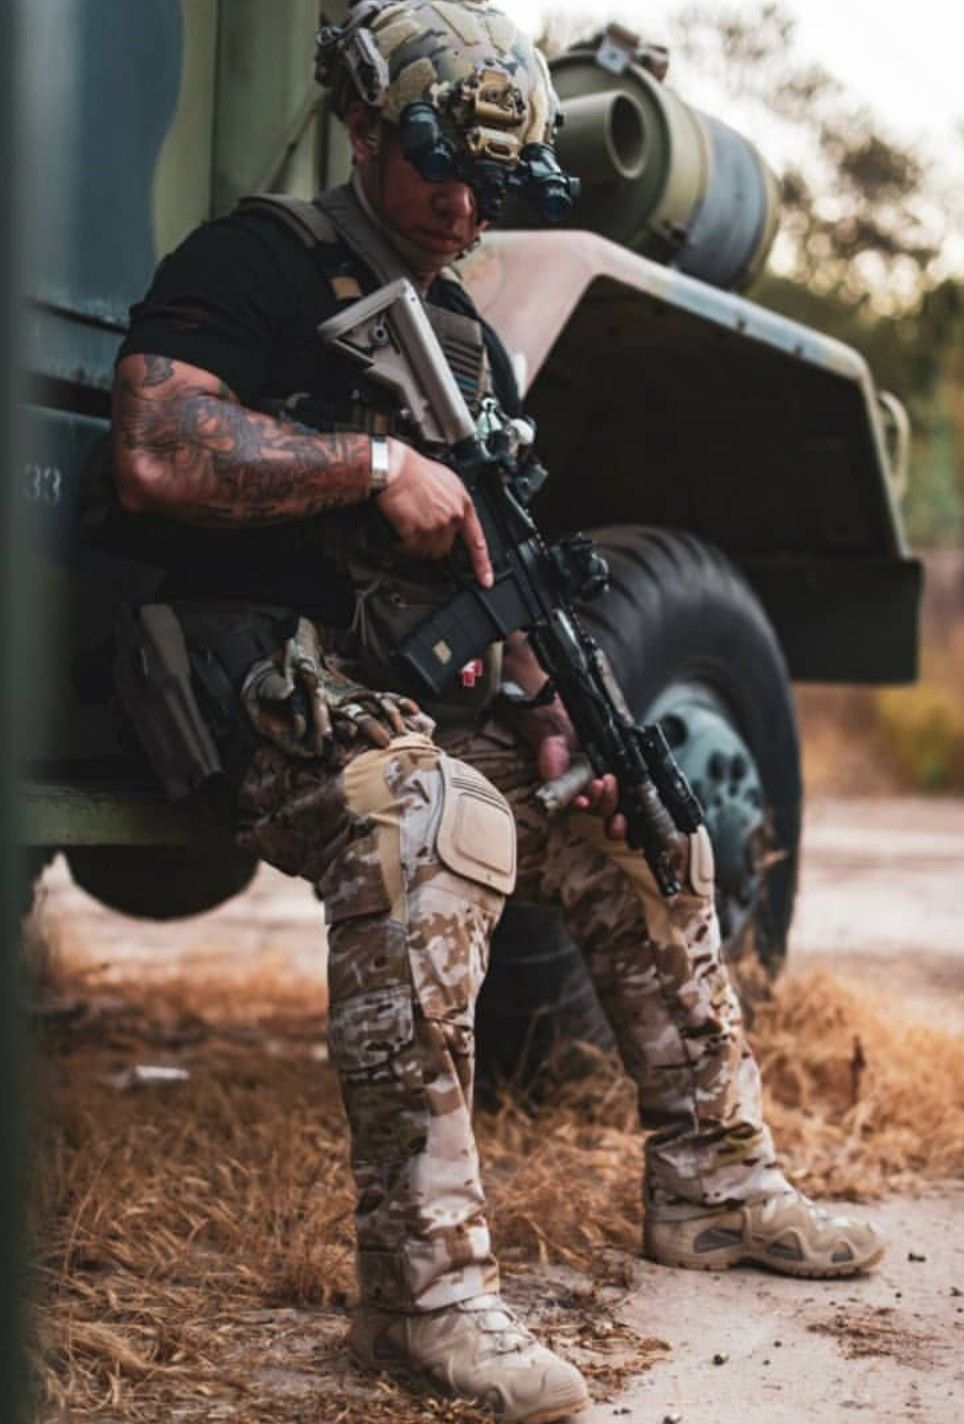 Pin By Cameron On Tactical Life Tactical Life Green Beret Special Forces